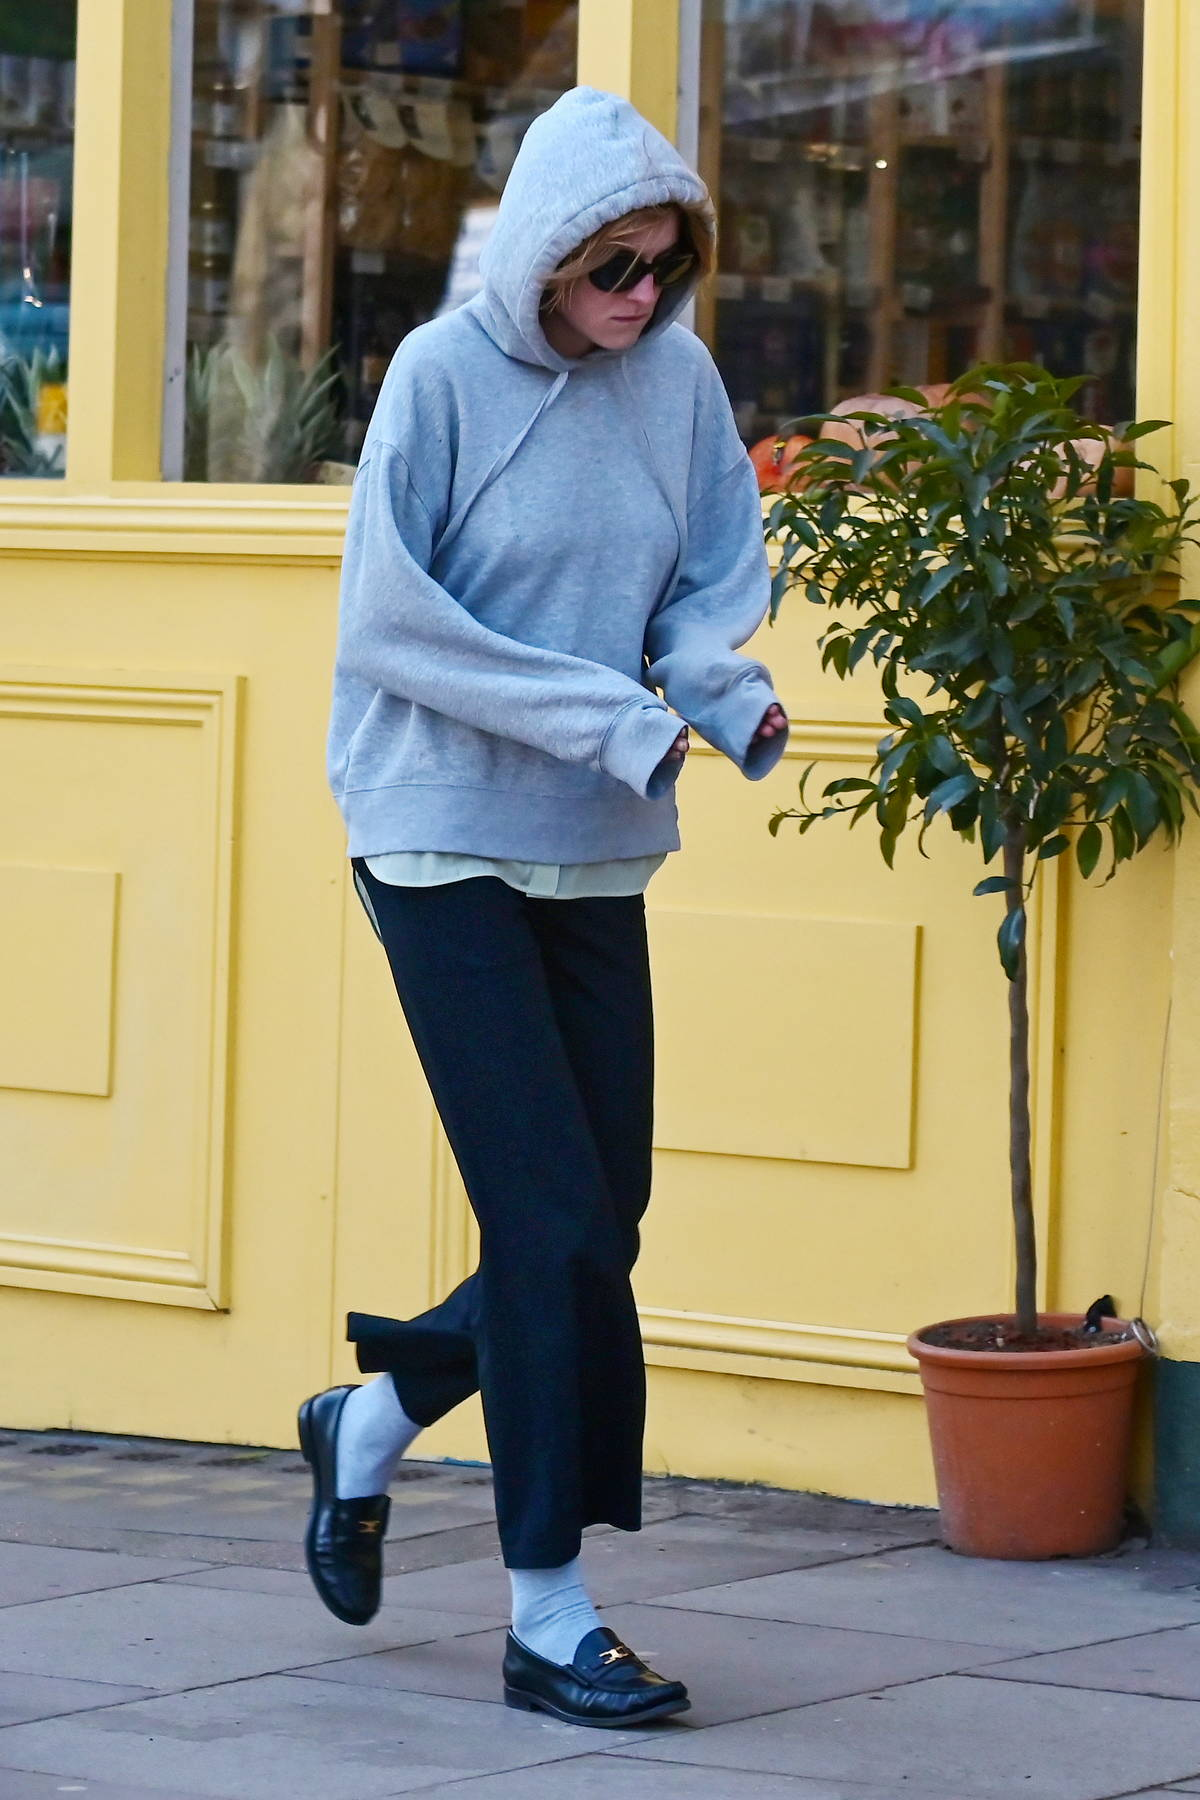 Emma Corrin keeps warm in a hoodie while stepping out to grab a cup of coffee in North London, UK